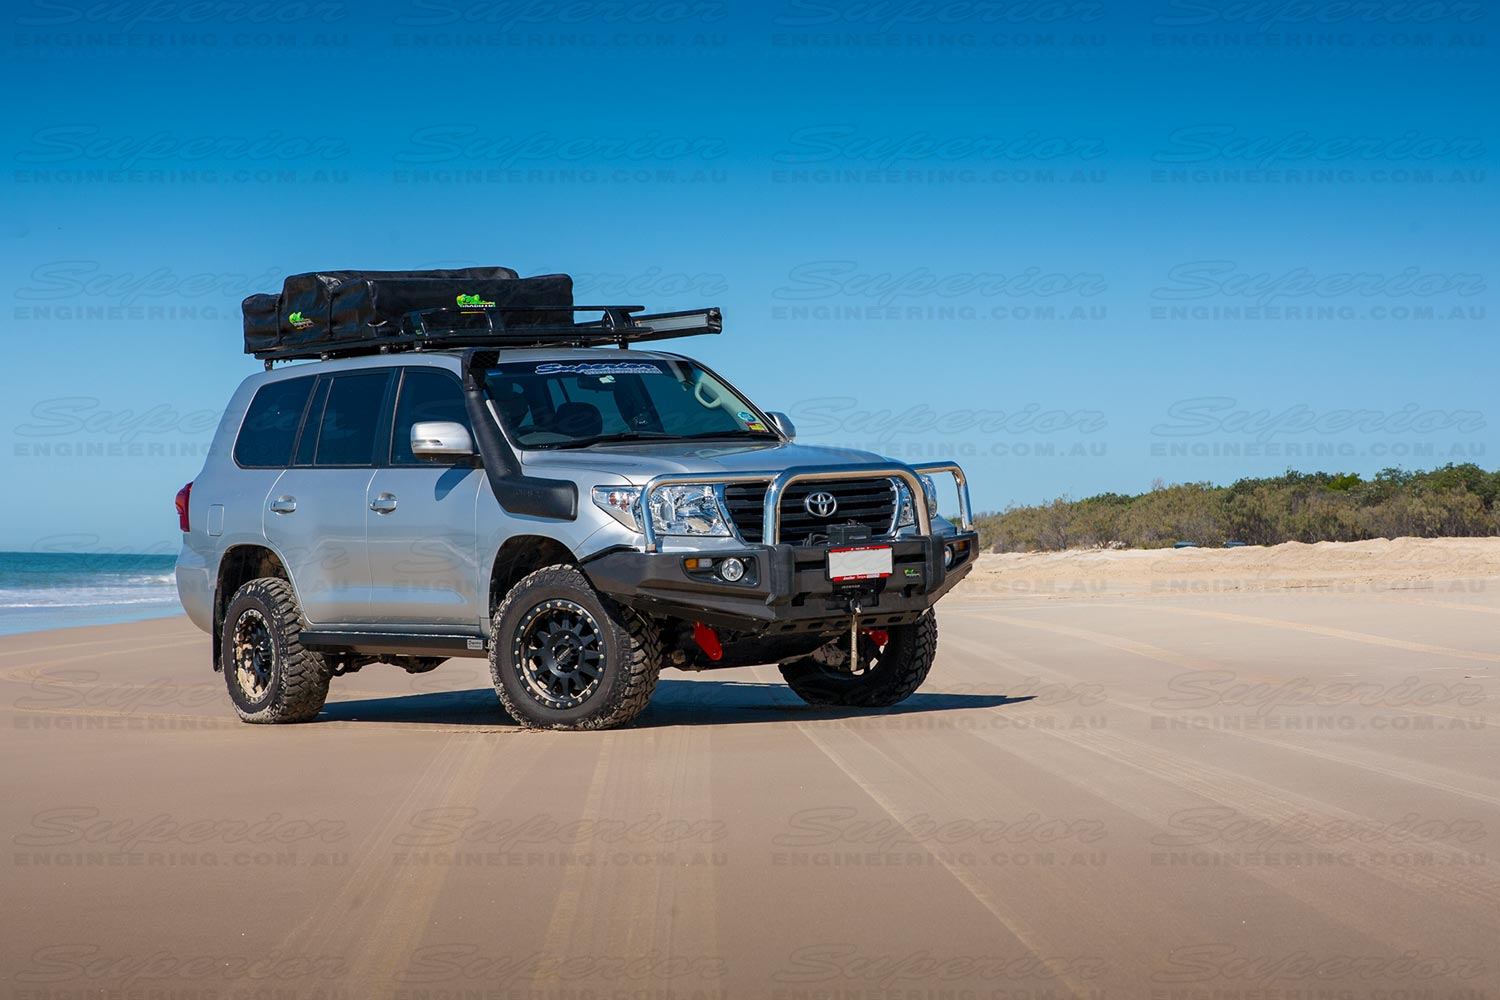 Right side view of a 200 Series Landcruiser on Bribie Island beach with the recovery point installed